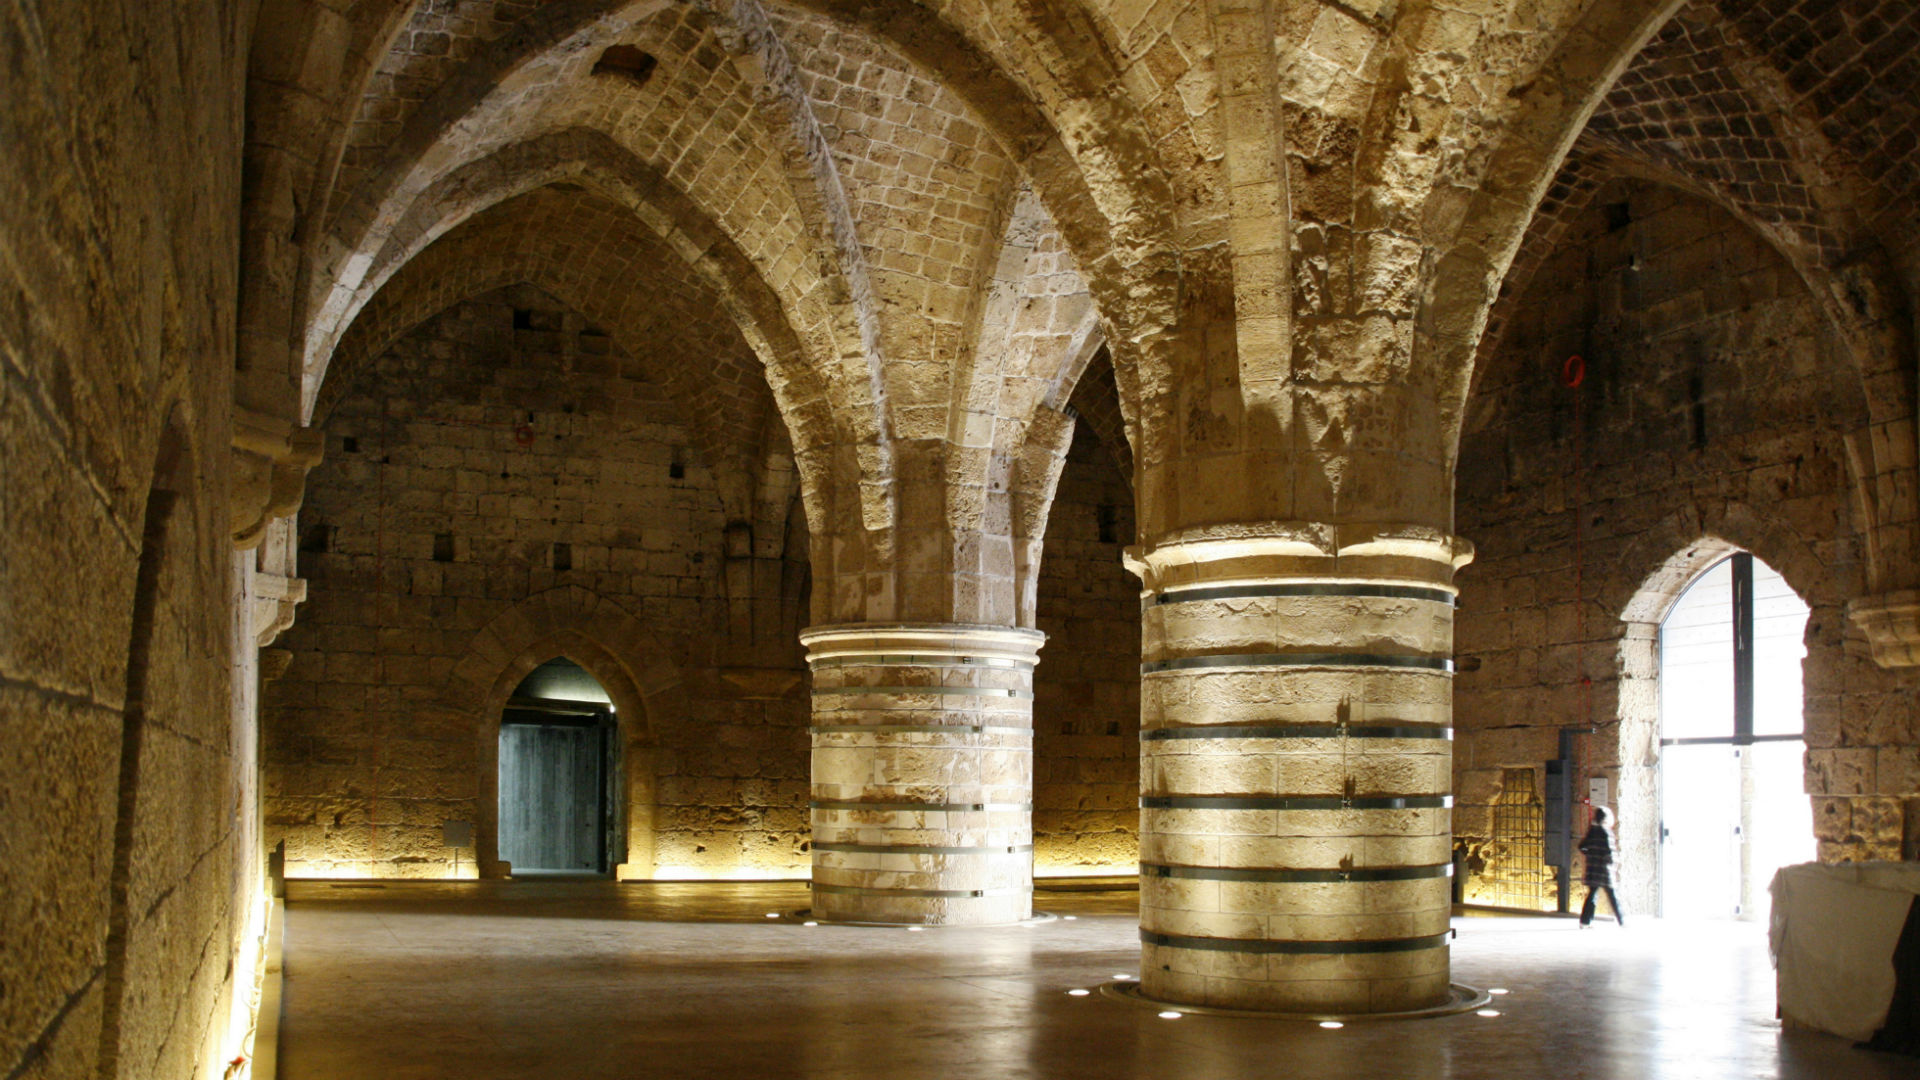 The Knights' Halls under the citadel and prison of Acre, Western Galilee, Acre (or Akko), Israel.